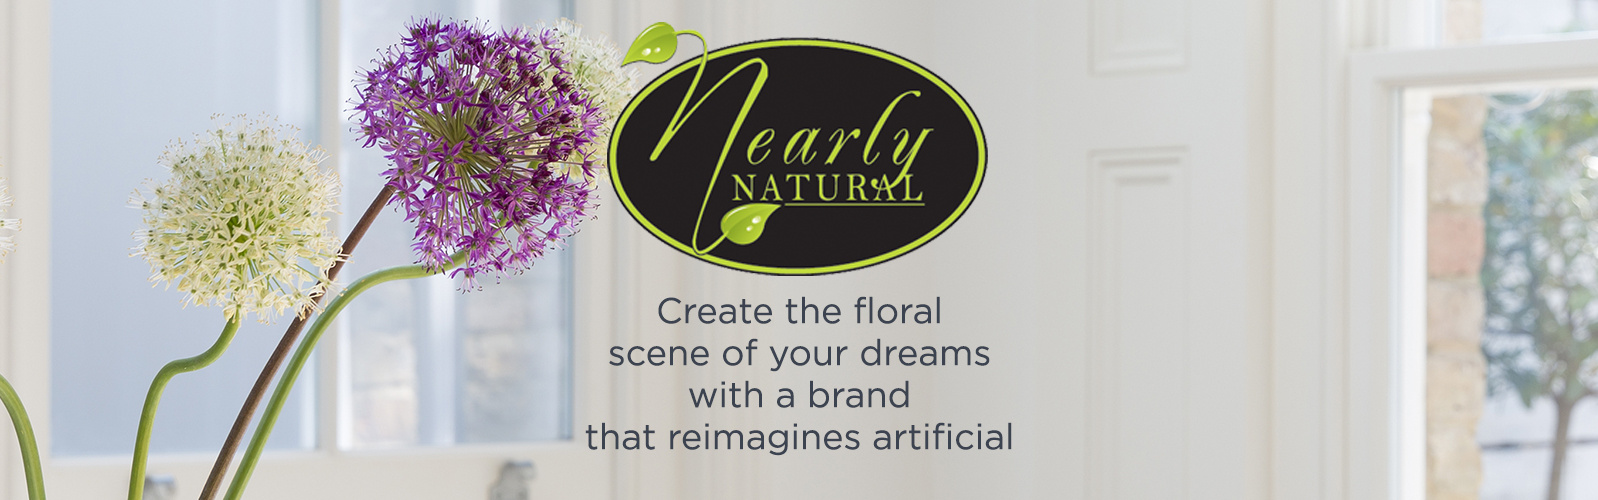 Nearly Natural.  Create the floral scene of your dreams with a brand that reimagines artificial